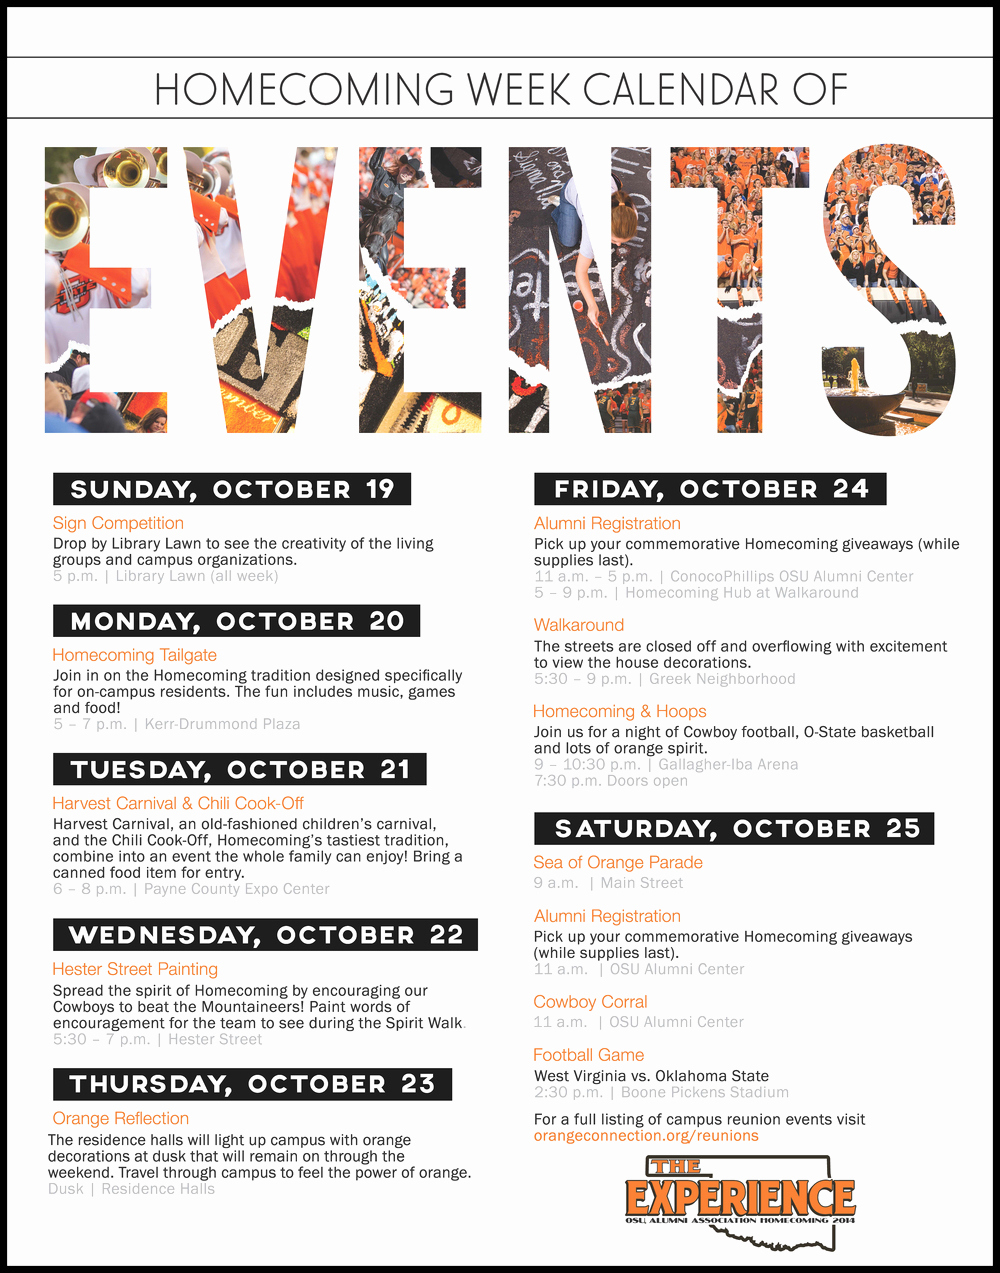 Free event Calendar Template Luxury Schedule events Flyer Google Search Sample Flyers and